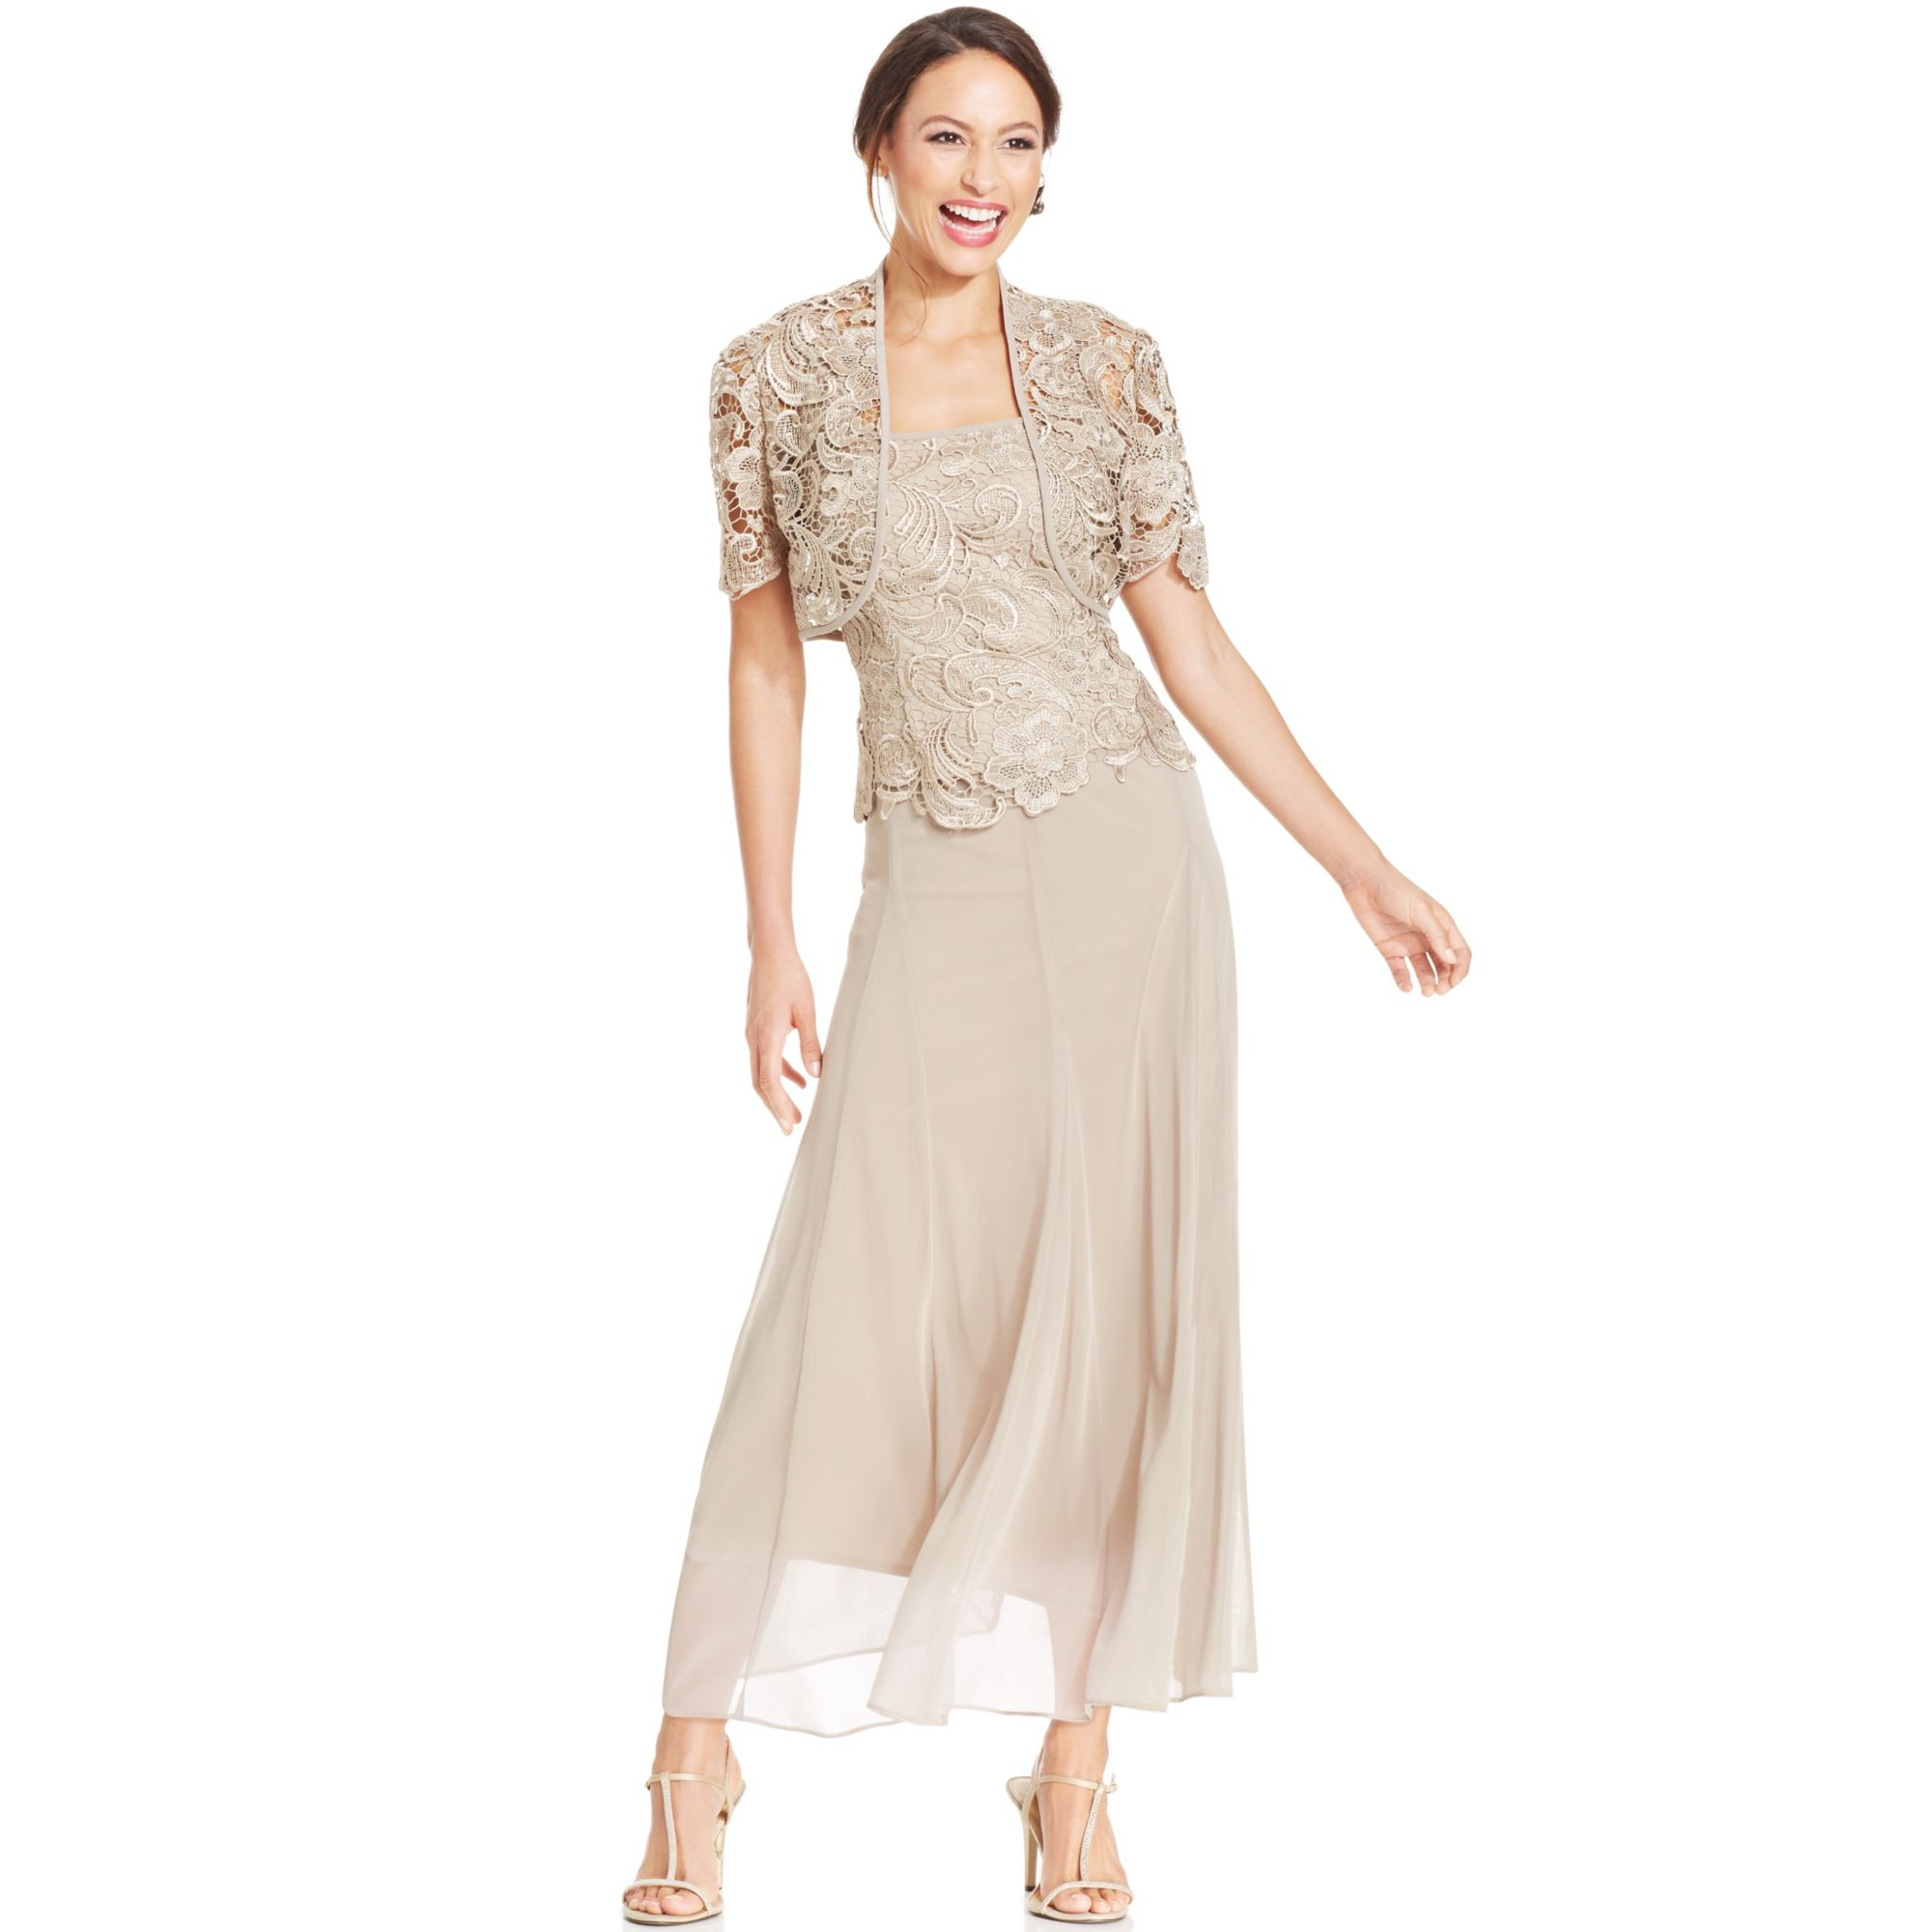 Alex evenings lace chiffon dress and jacket in beige for Cocktail dress with jacket for wedding